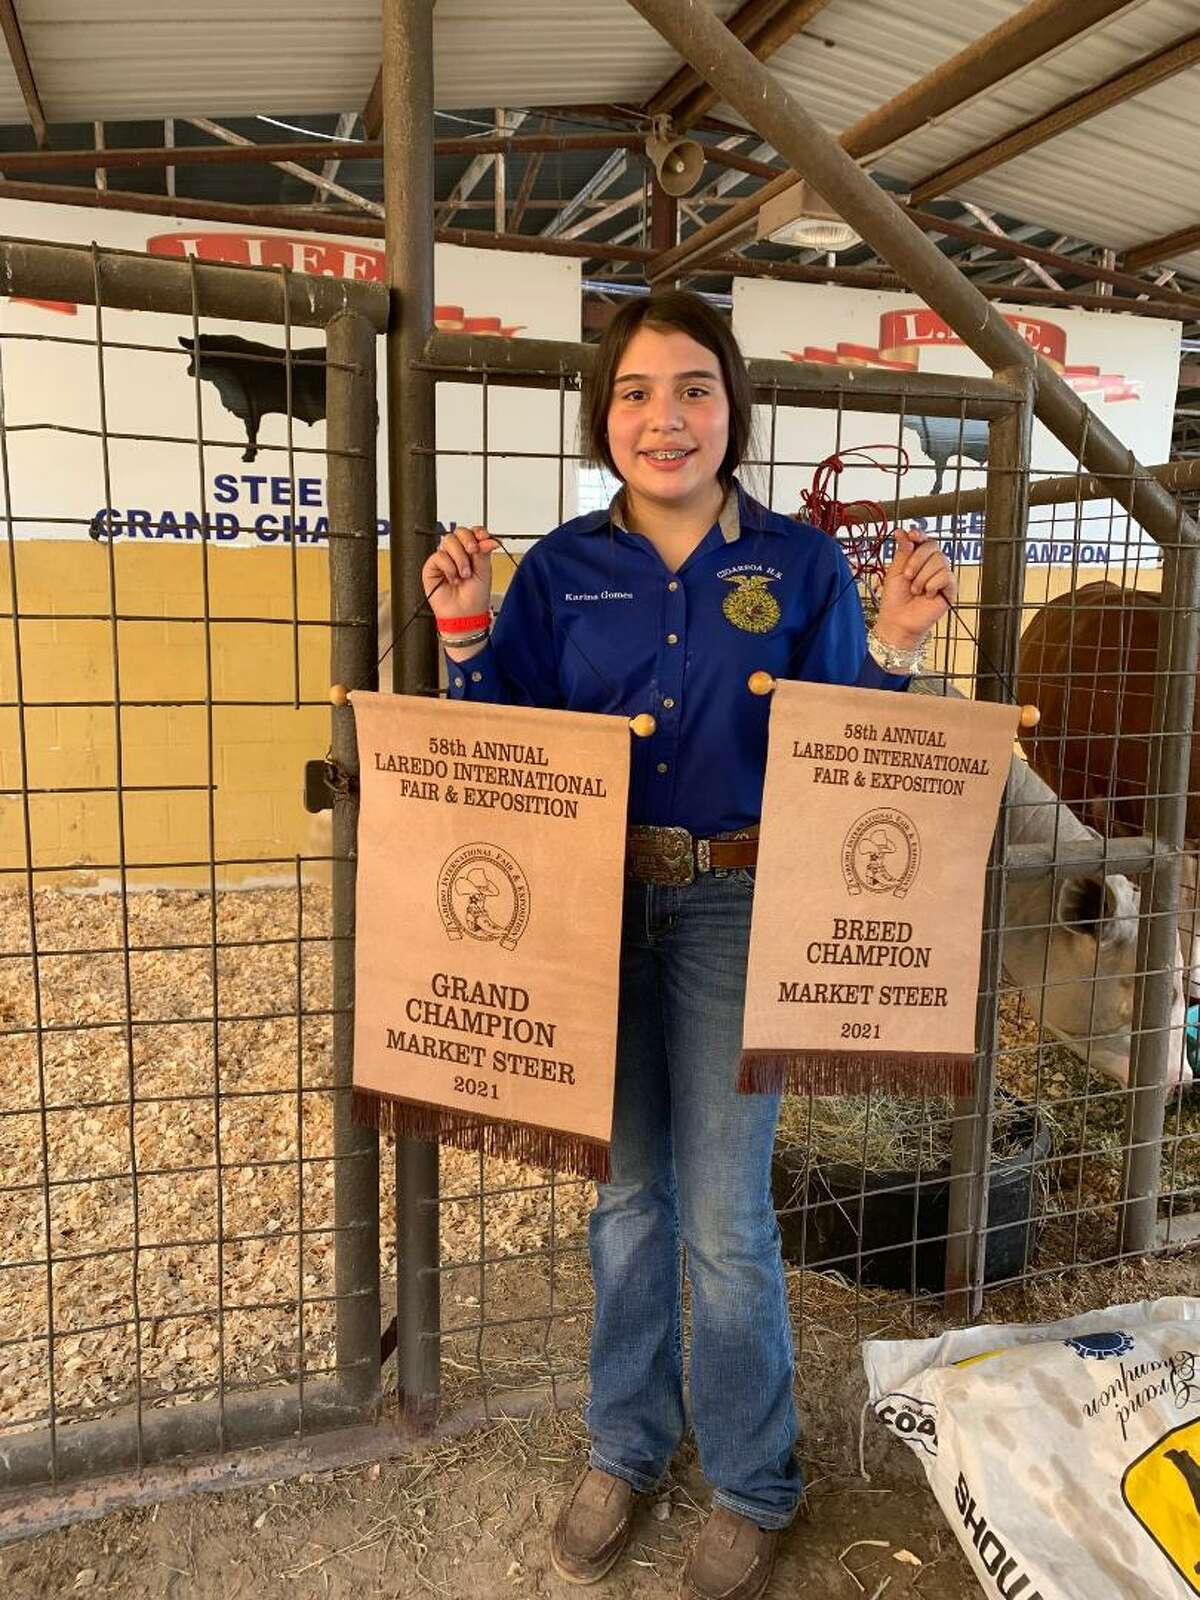 Karina Gomez, an eighth grader at Cigarroa Middle School and a member of the Cigarroa High School's Jr. FFA Program, was recently named Grand Champion for Market Steer at the 2021 Laredo International Fair and Exposition Livestock Show. She was also named Breed Champion at the fair.